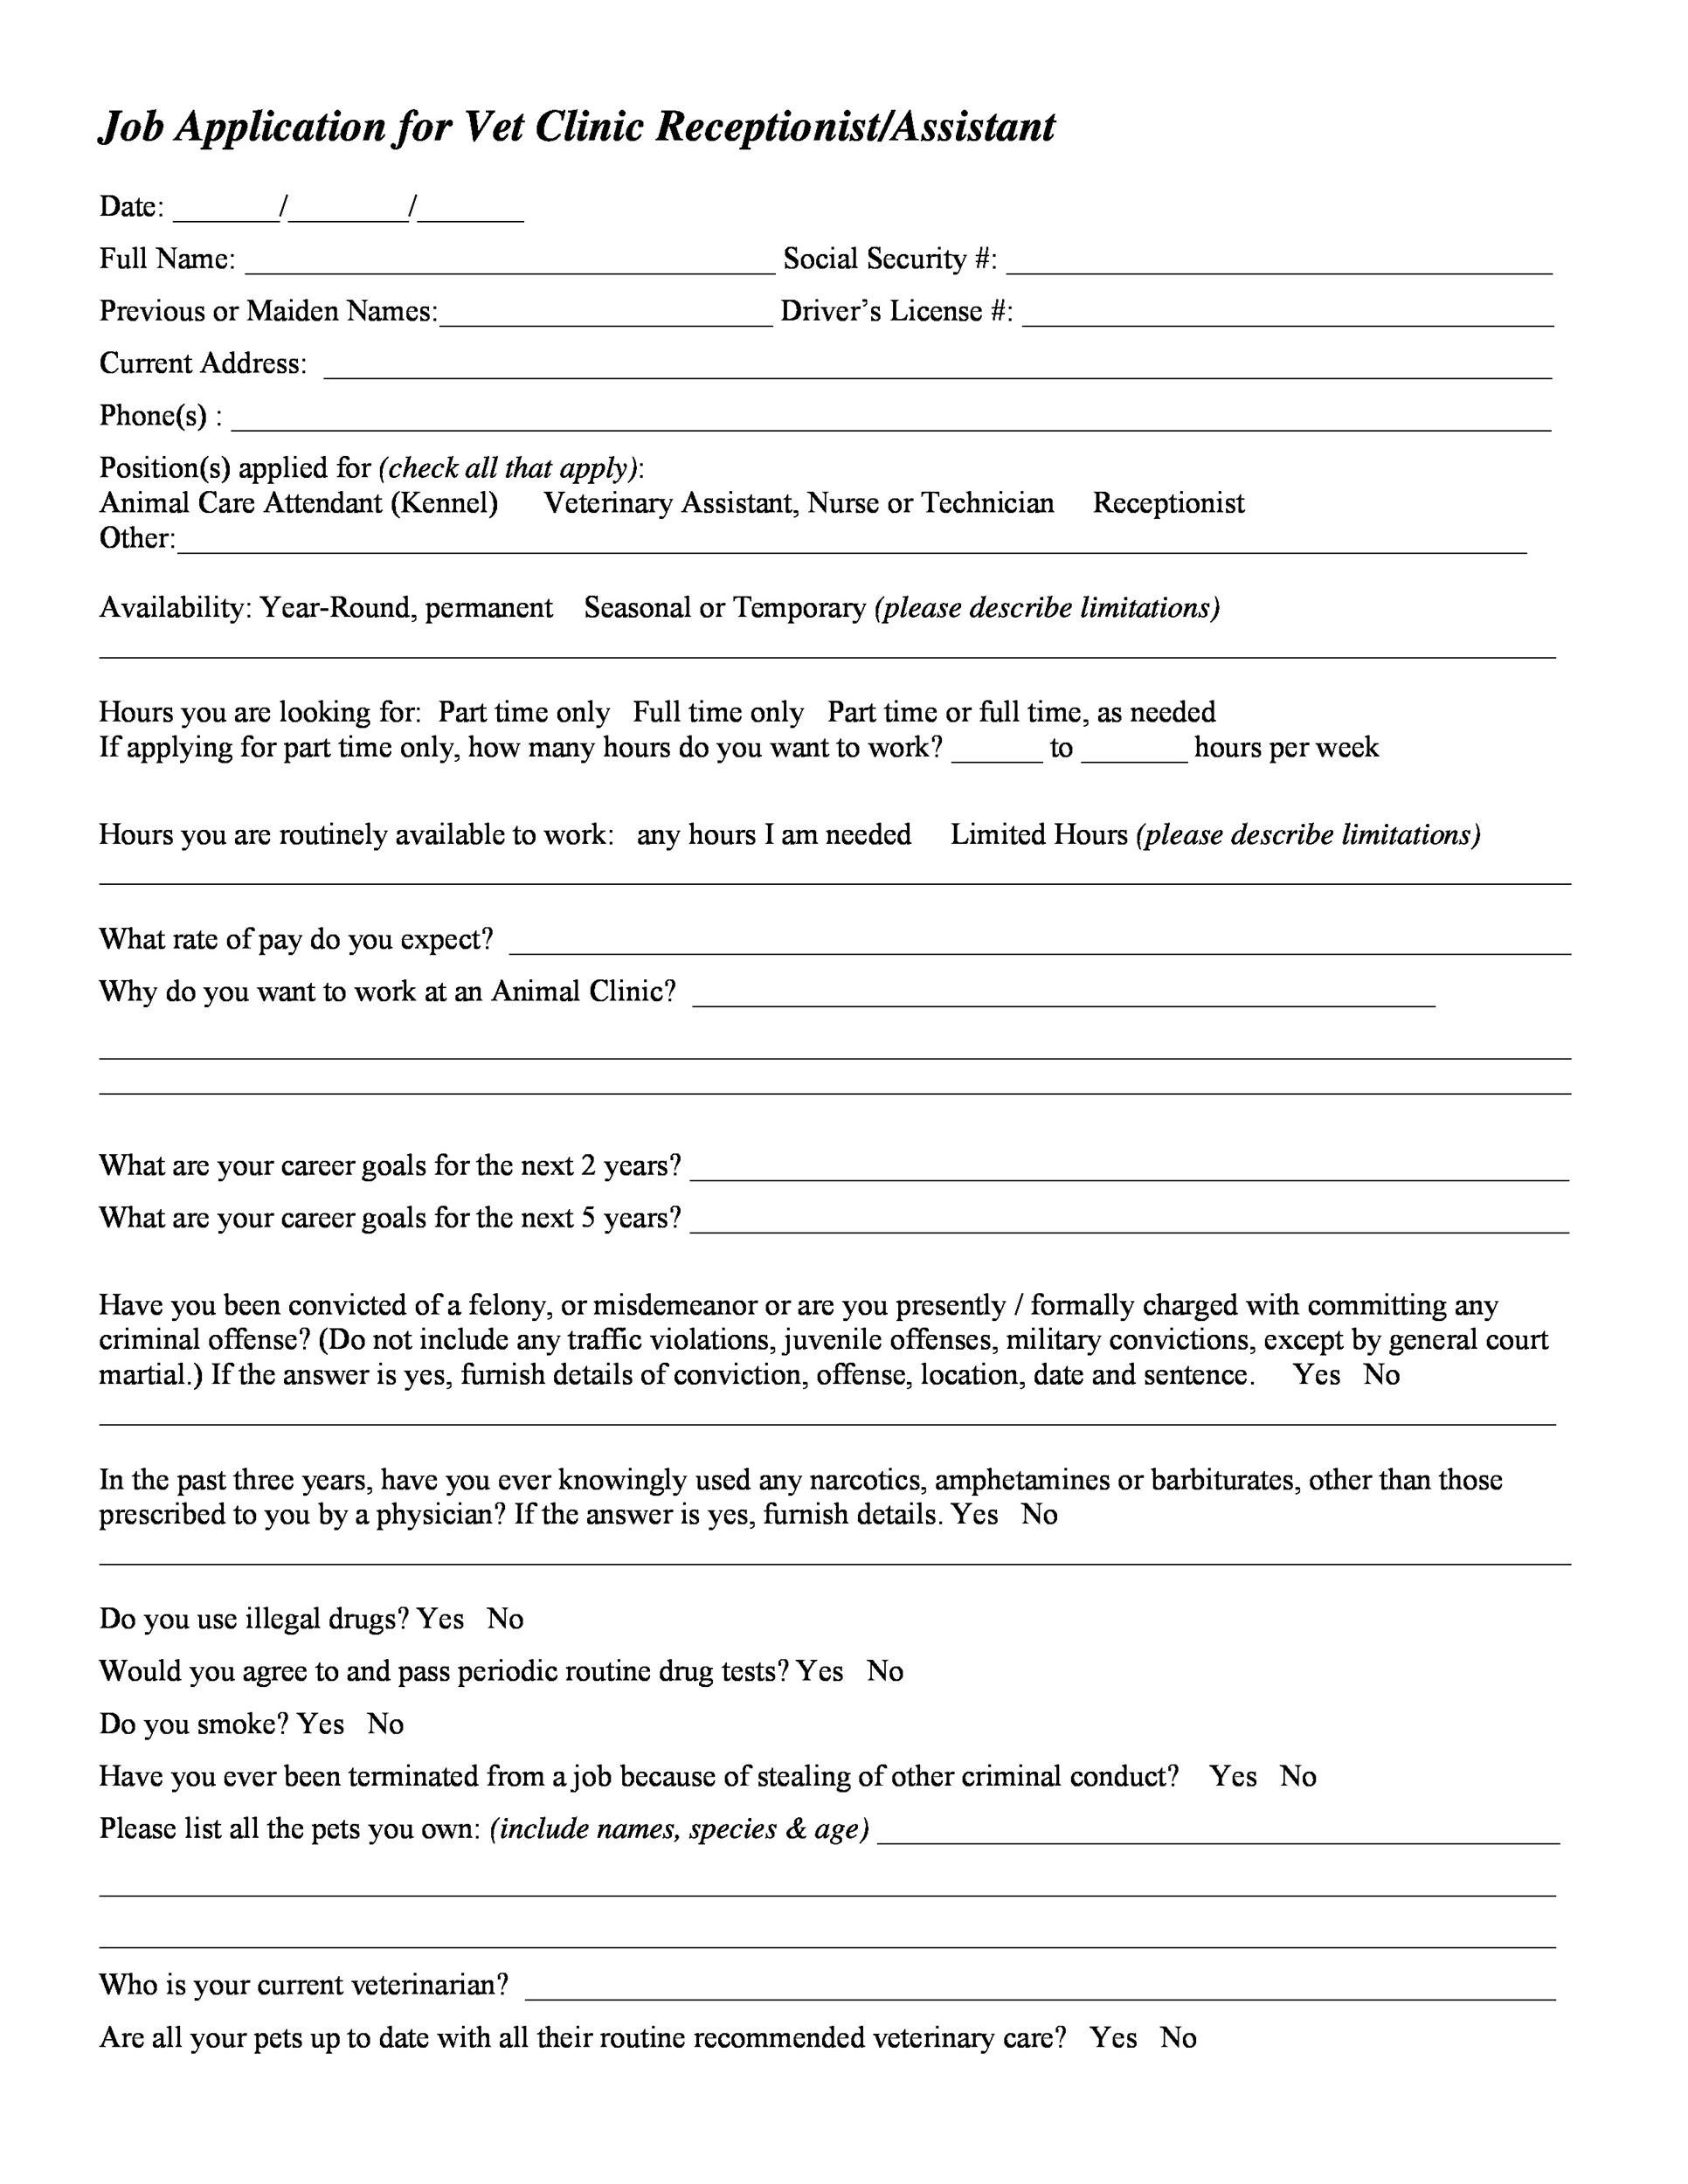 Have job applicants type their information online into this application form template. 50 Free Employment Job Application Form Templates Printable Á… Templatelab